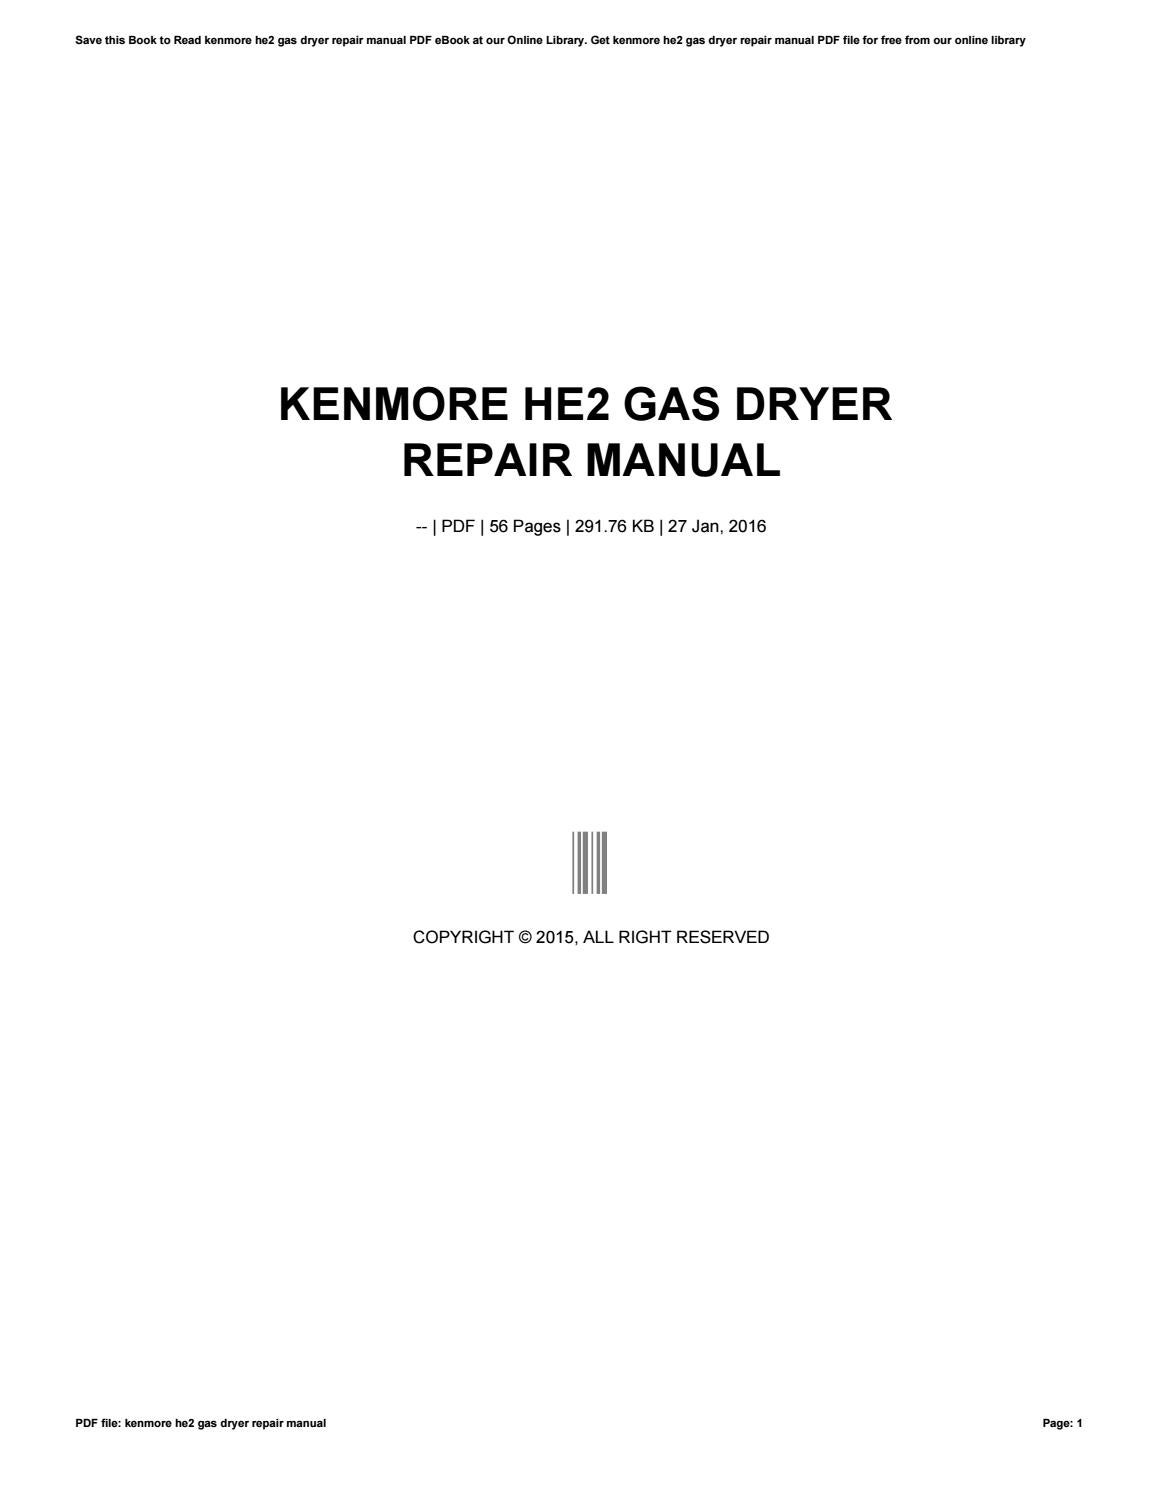 kenmore he2 repair manual